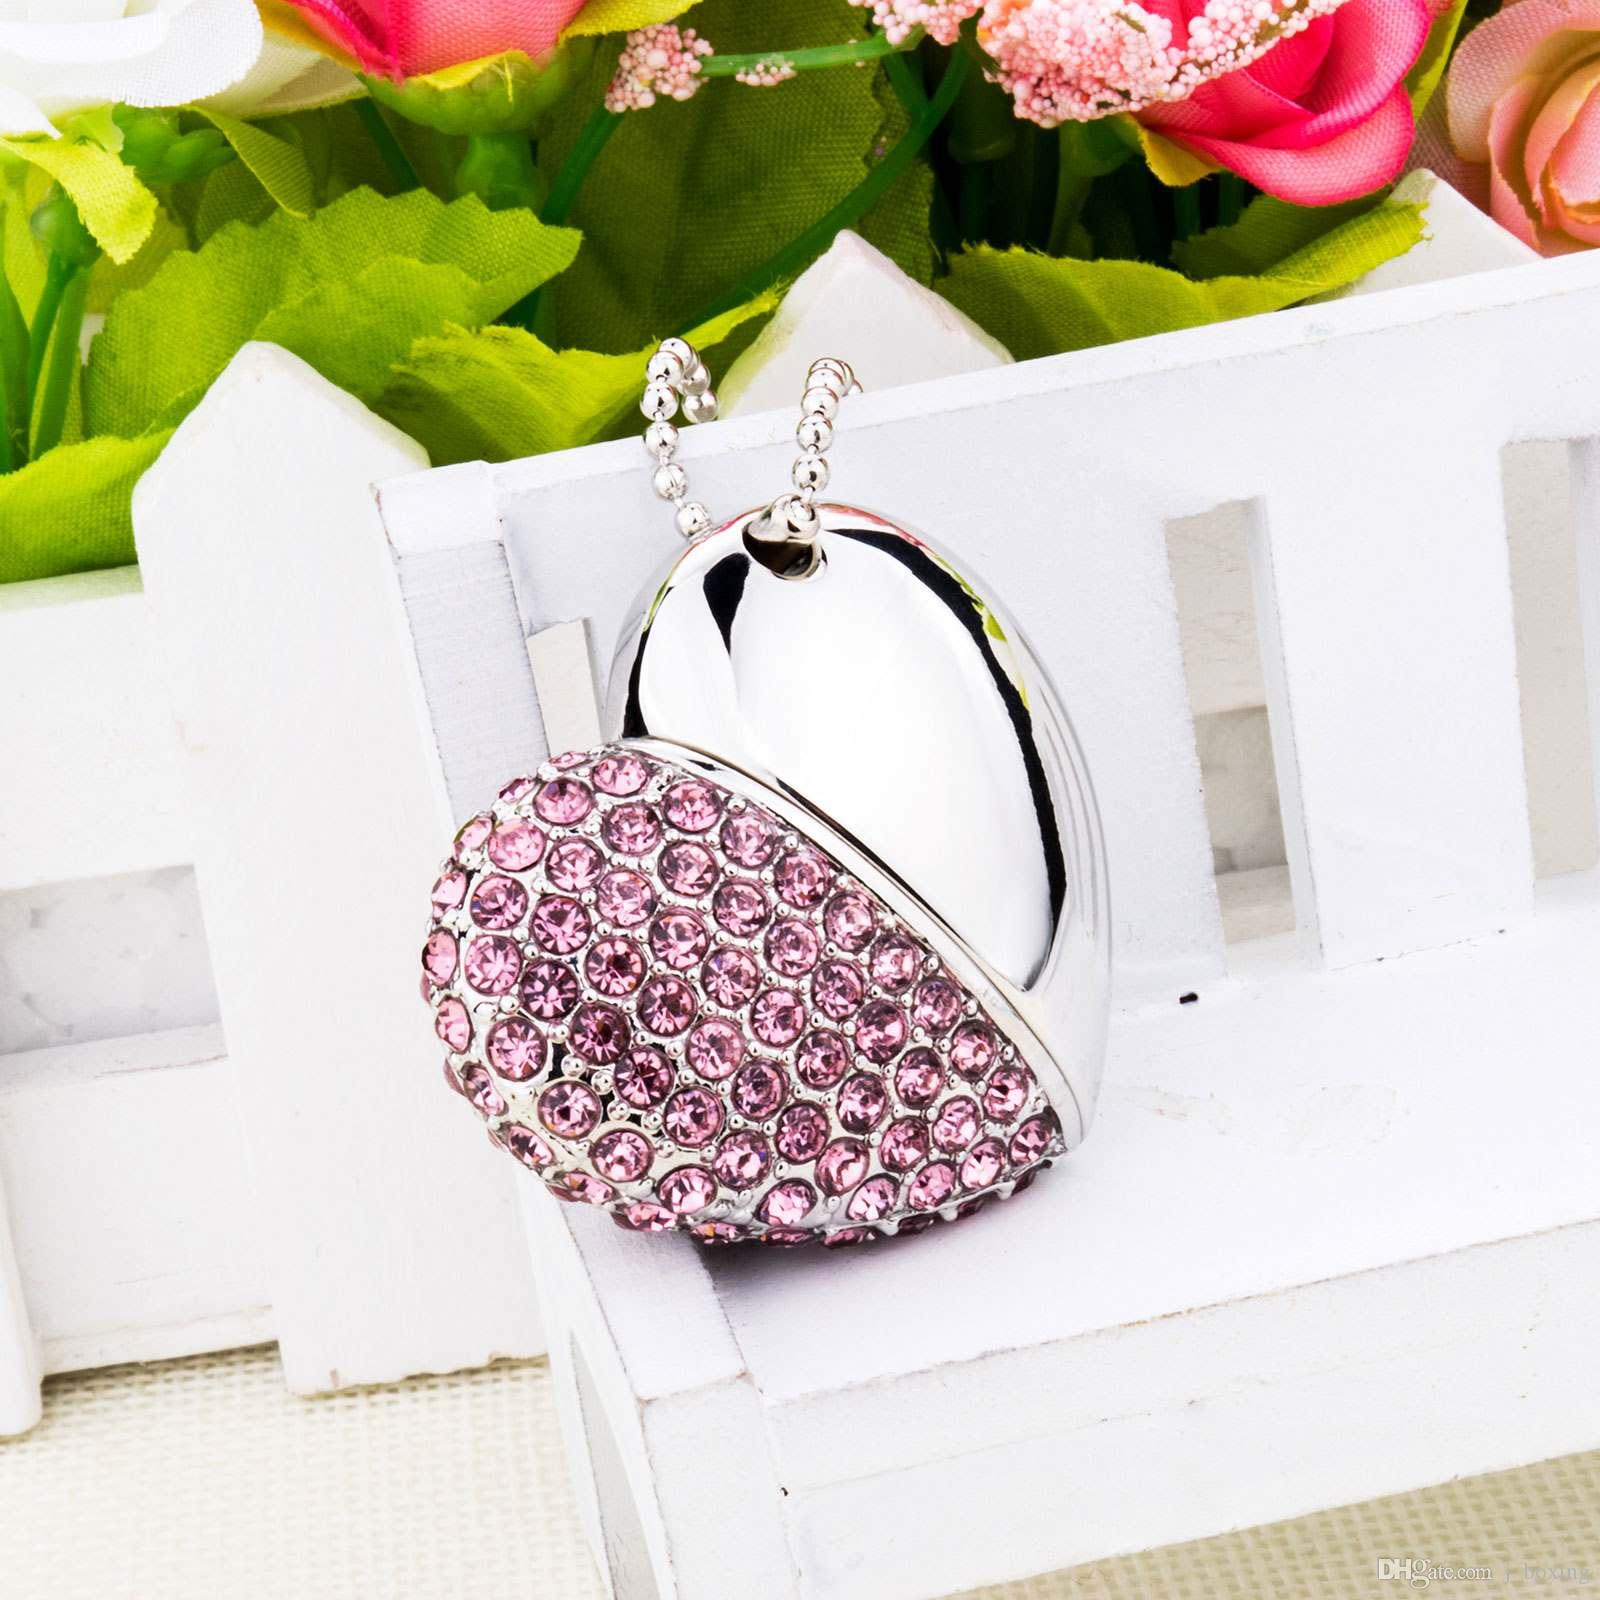 Pink Crystal Heart Shape 8G 16G 32G 64G USB 2.0 Flash Drives Enough Memory Sticks Thumb Pen Drive for Computer Laptop Macbook Tablet